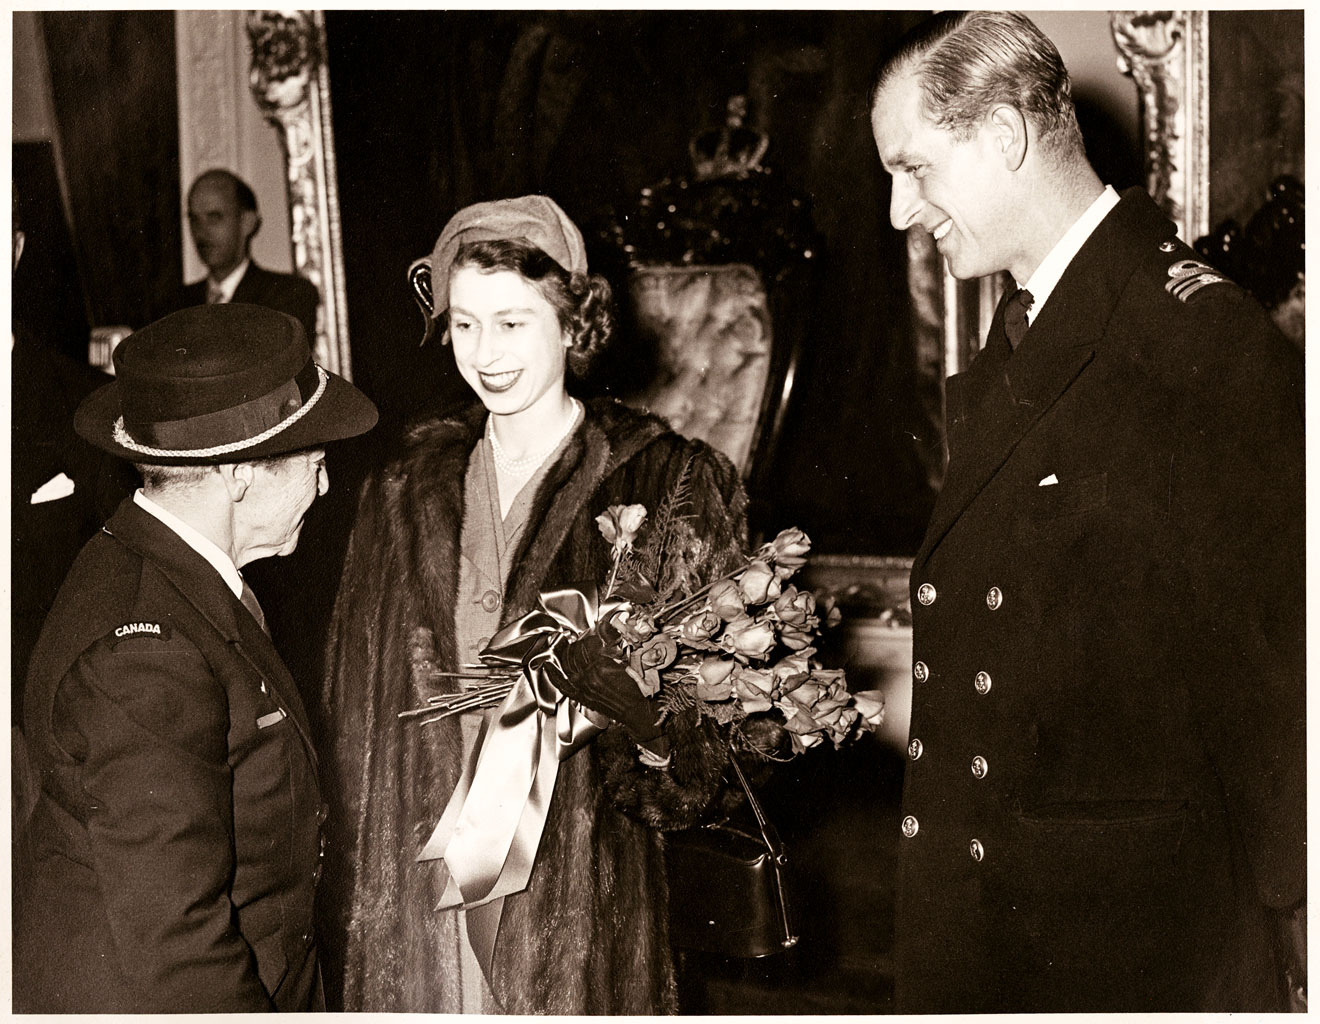 Her royal highness queen elizabeth ii shaking her big honking flopping granny knockers - 2 8